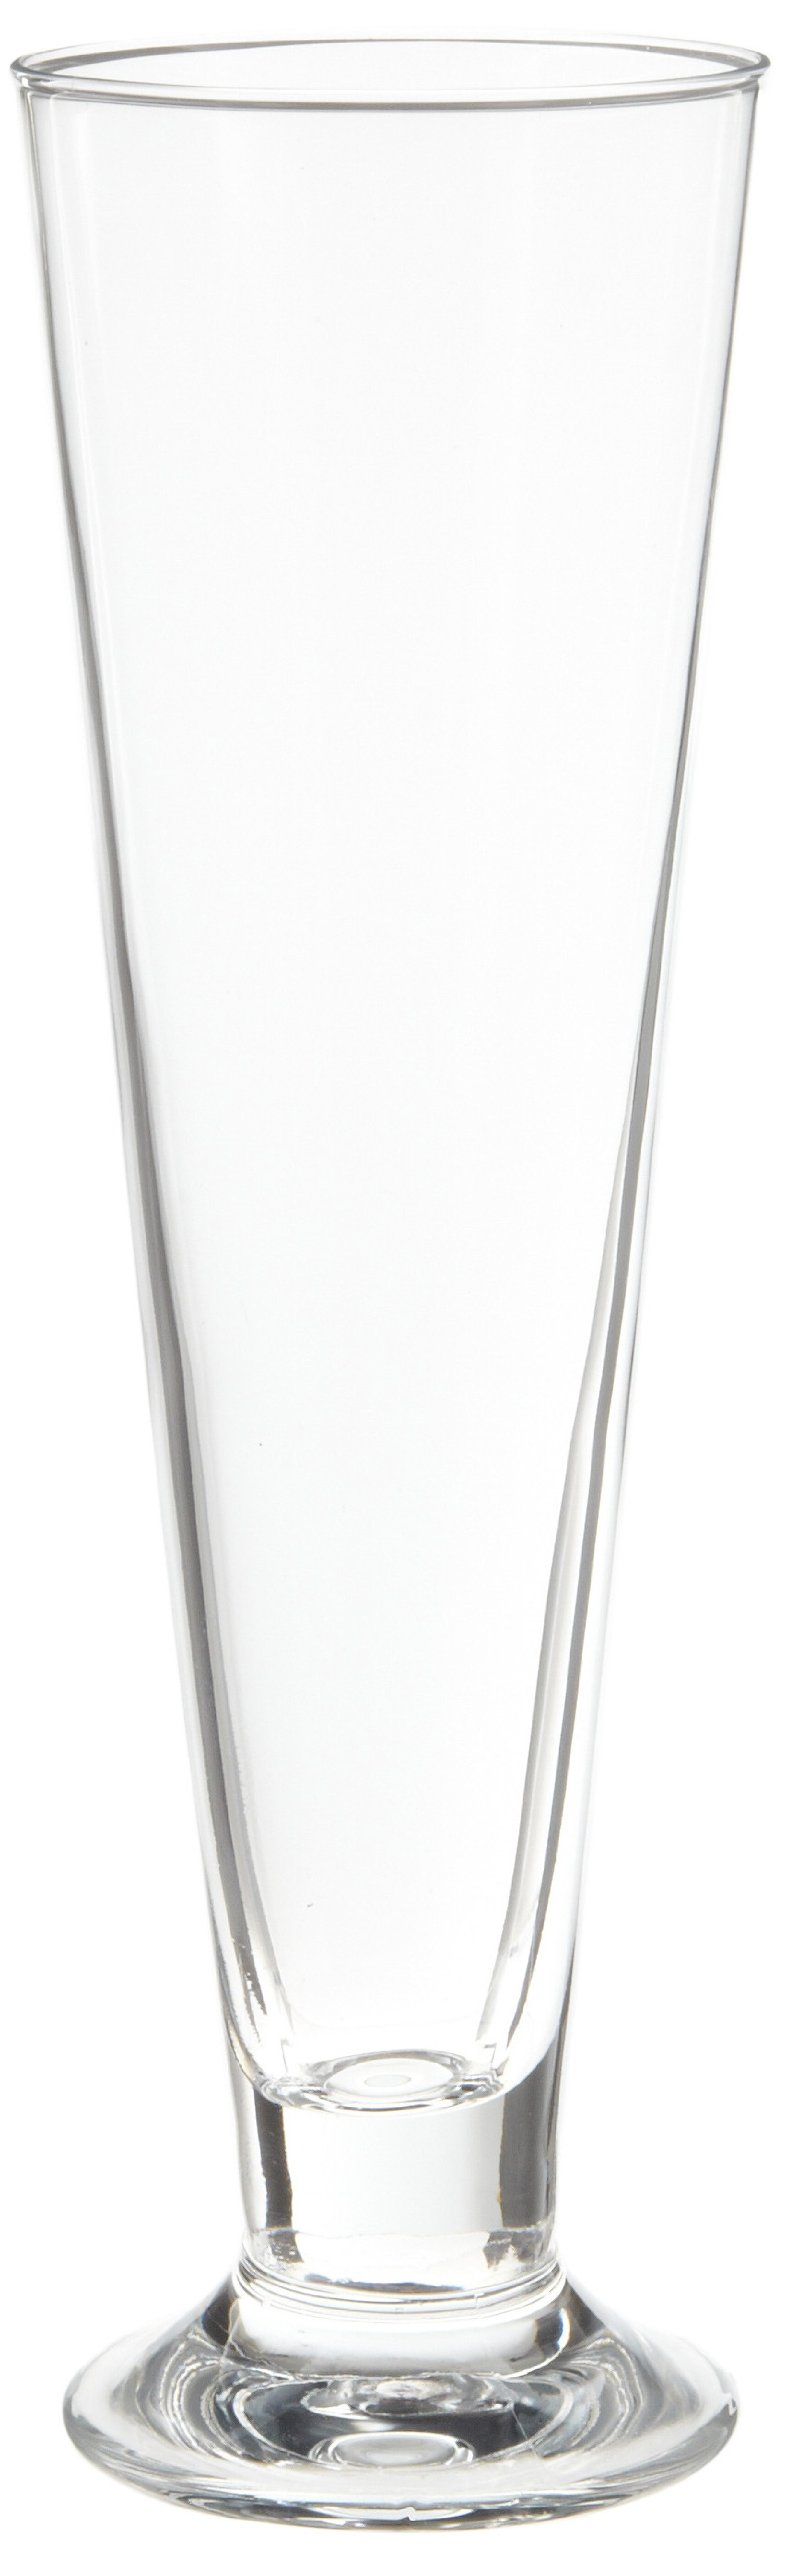 Anchor Hocking 165270 2-7/8 Inch Diameter x 9-3/8 Inch Height, 13-Ounce Footed Empire Beer Pilsner (Case of 6)